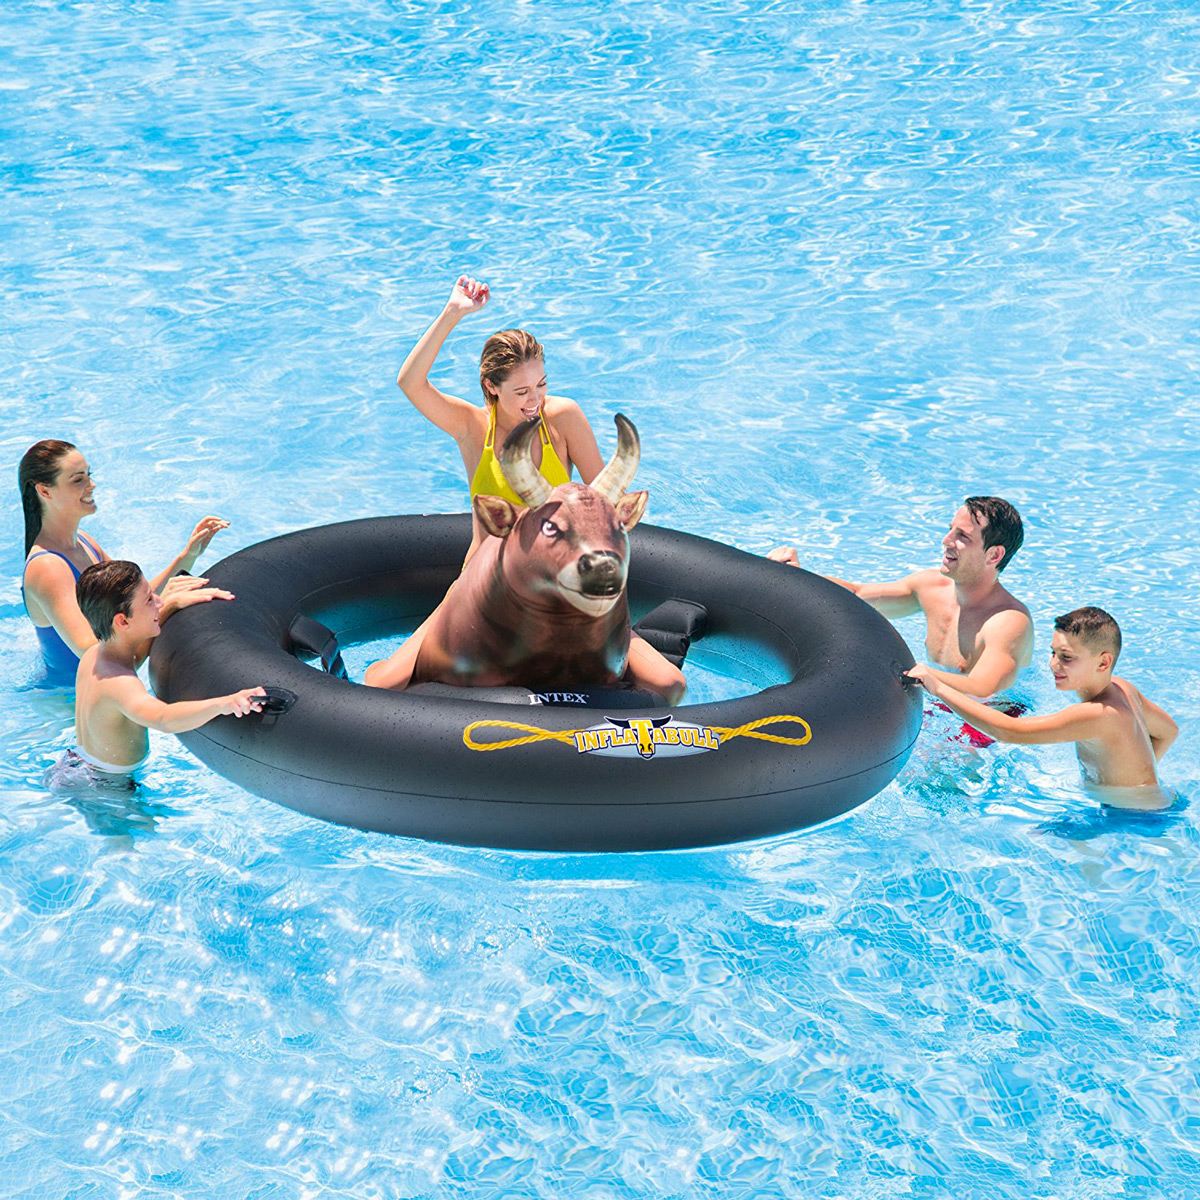 Inflat a Bull Inflatable Bull Riding Pool Toy The Green Head